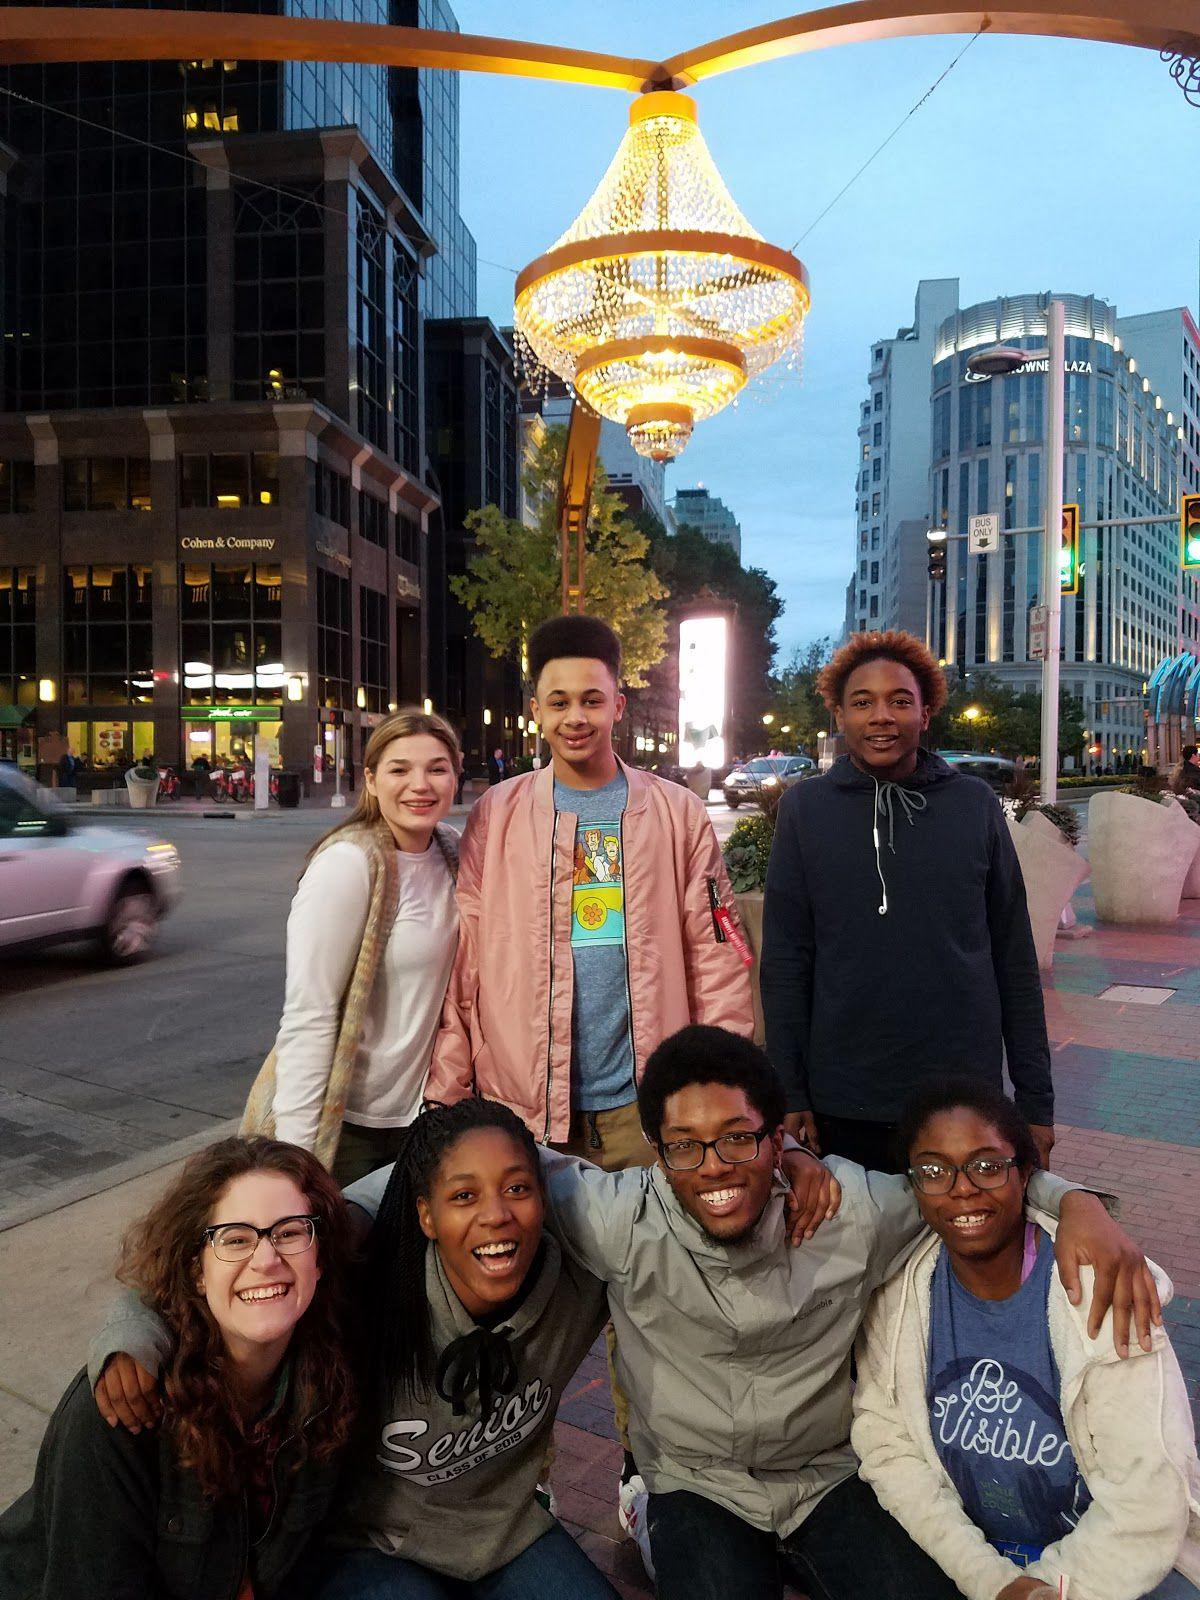 Students at Playhouse Square